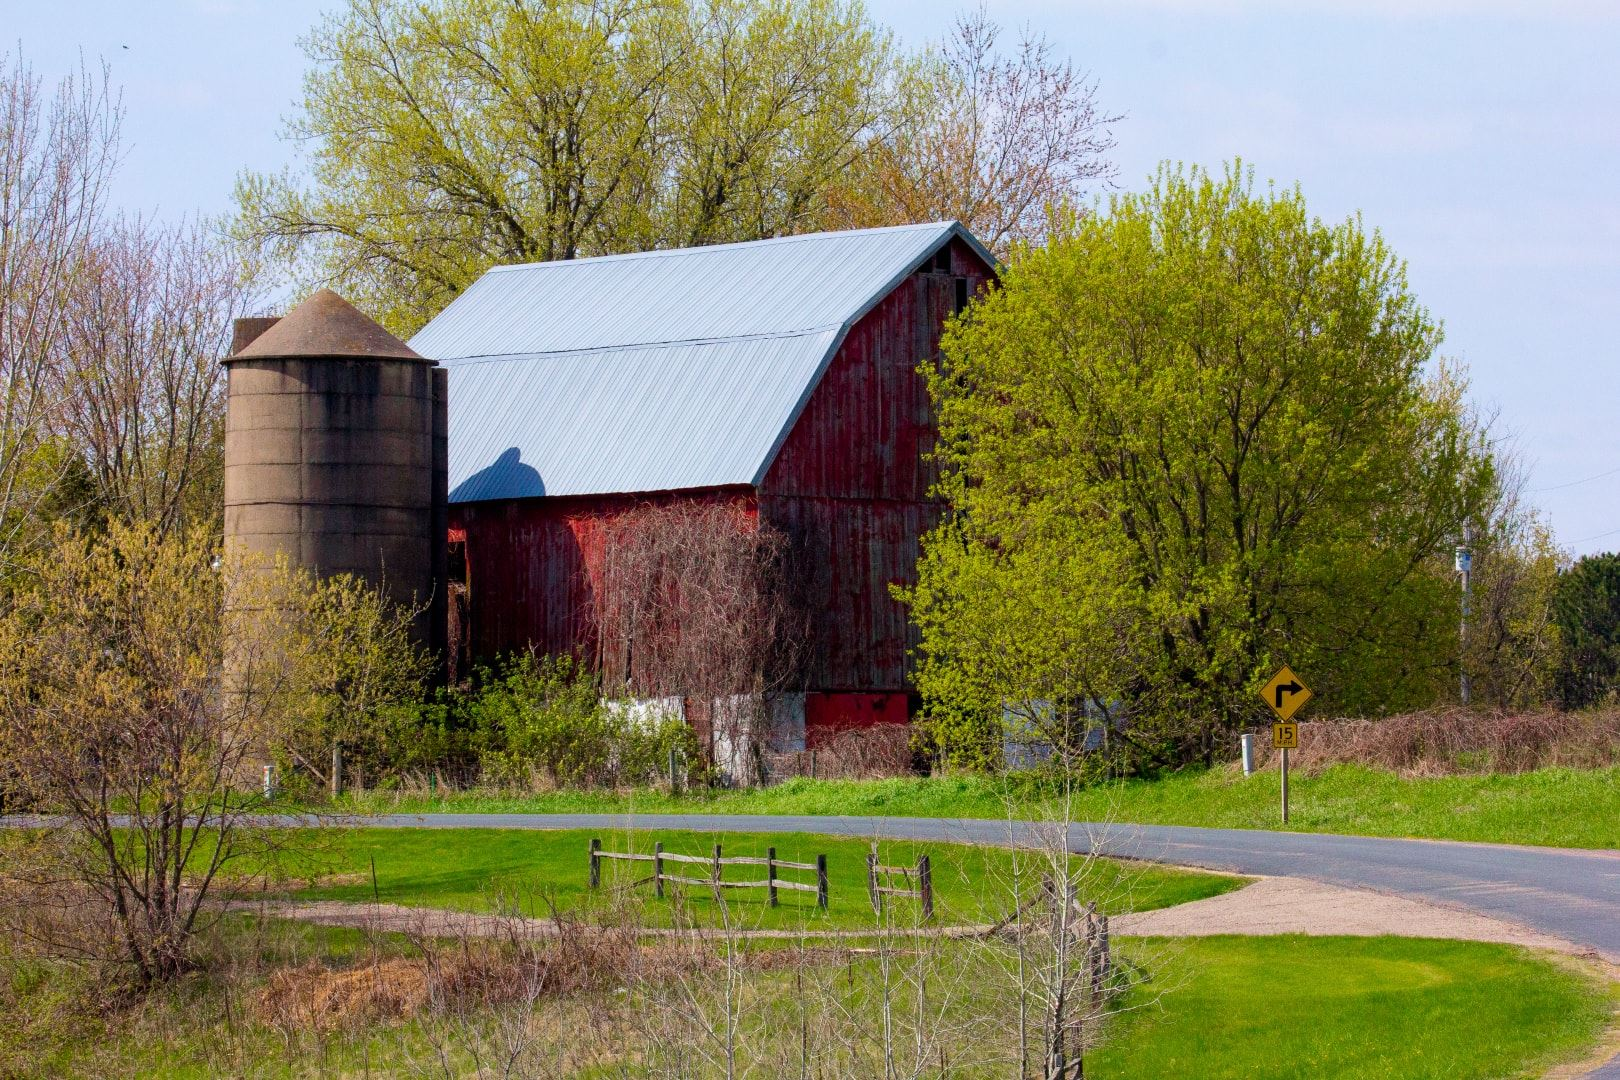 Weathered Red Barn and Silo